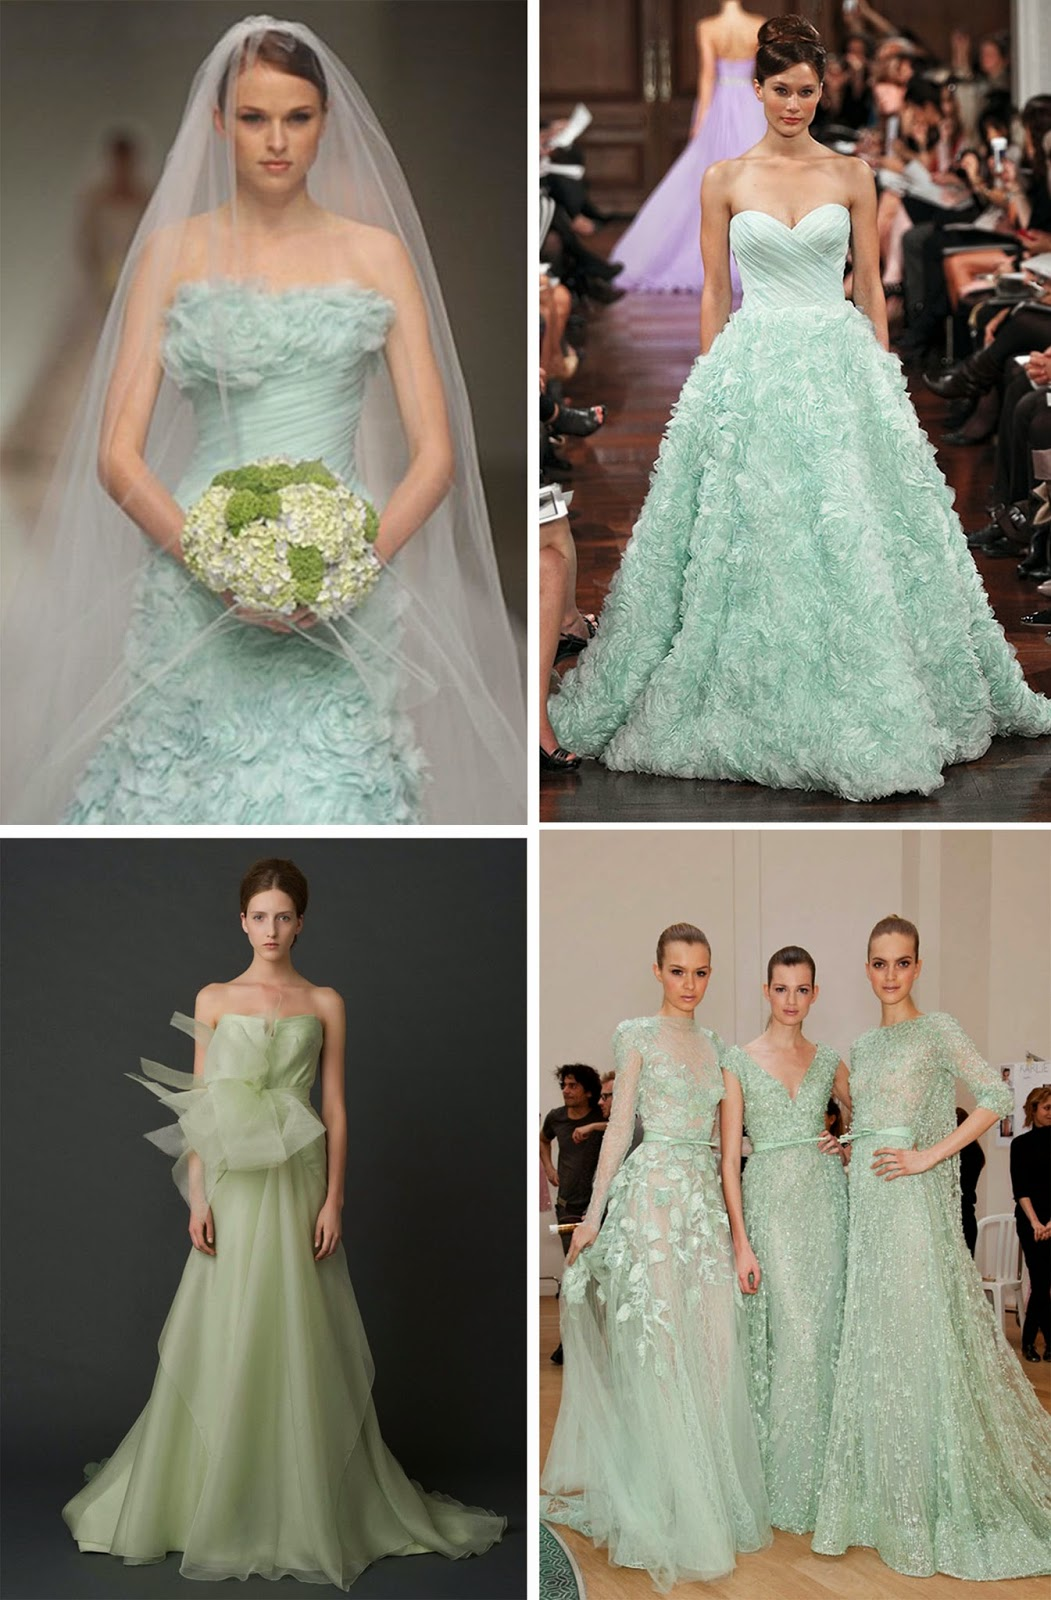 prom dress: Inspiring mint green wedding ideas